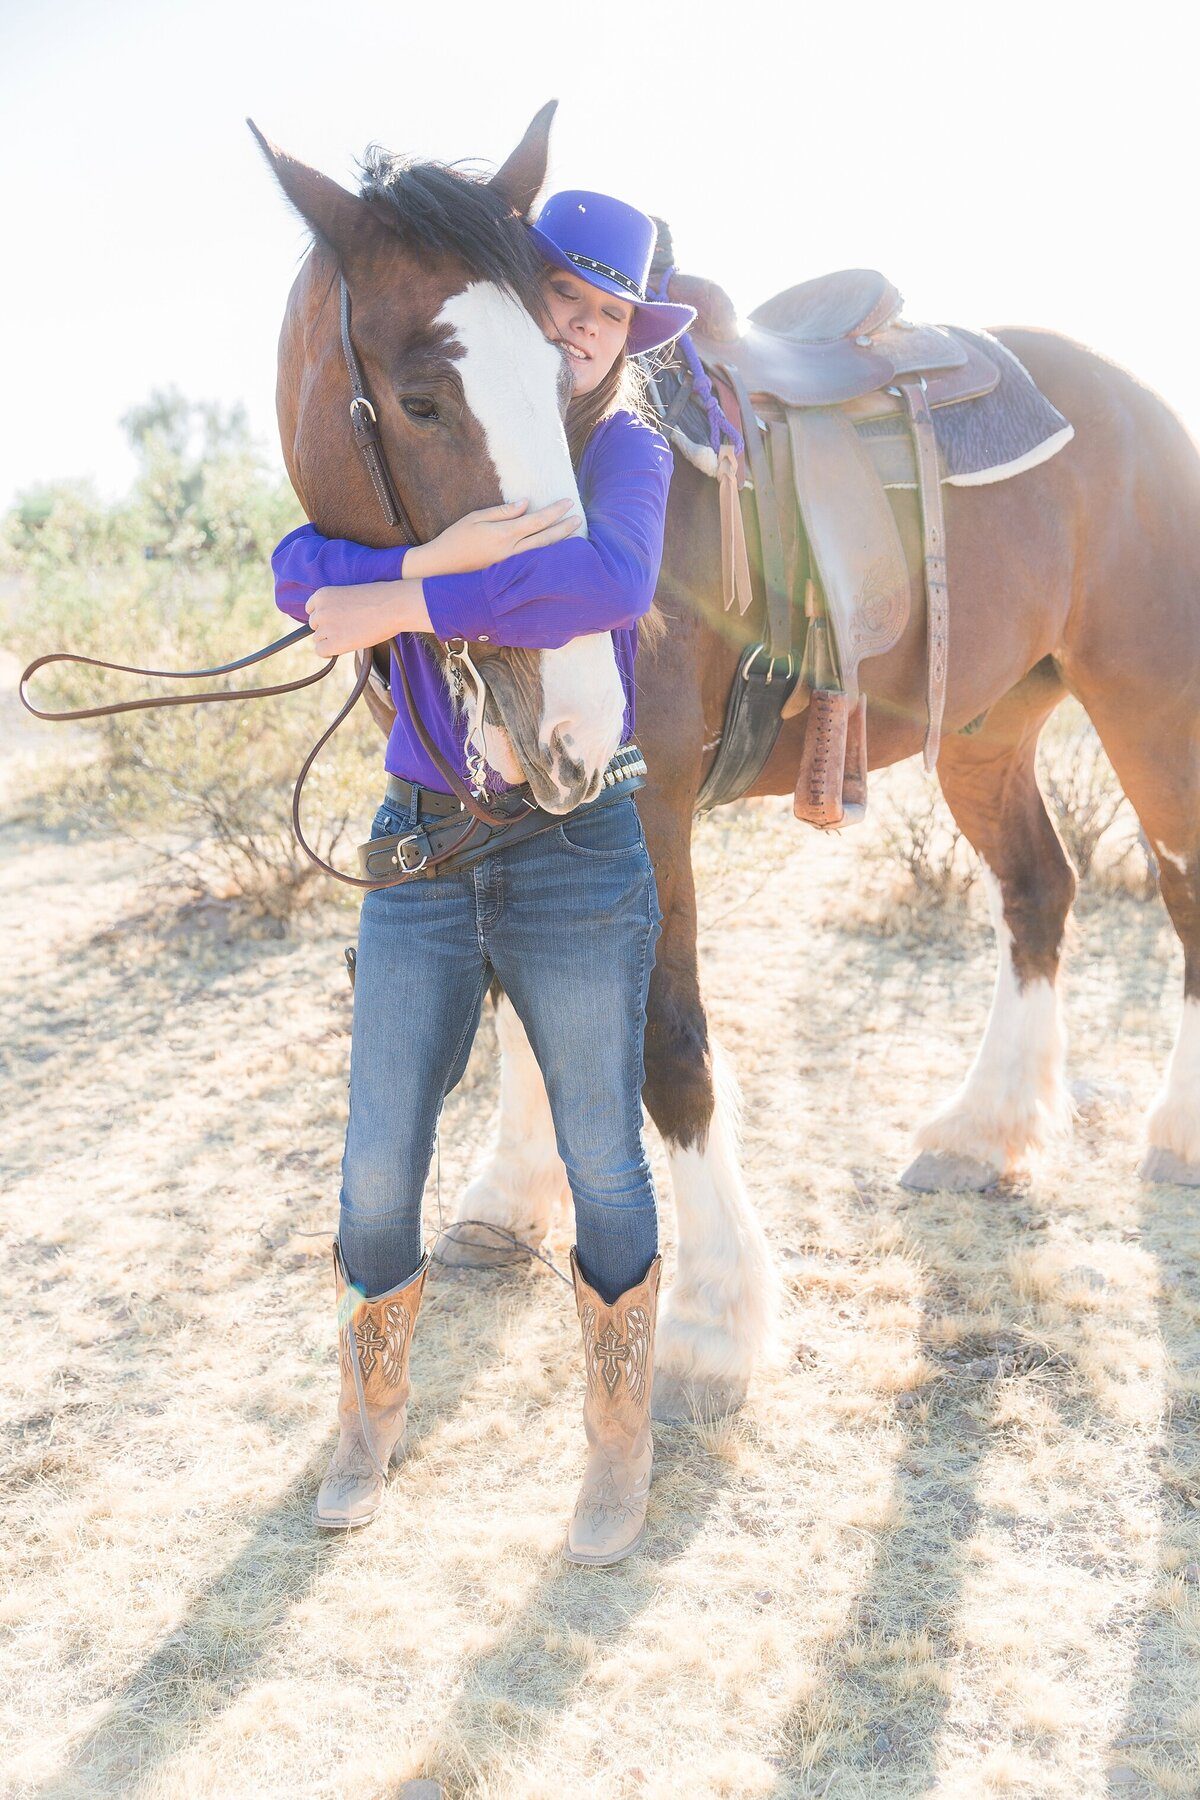 Cowgirl hugging the face of her Clydesldale horse